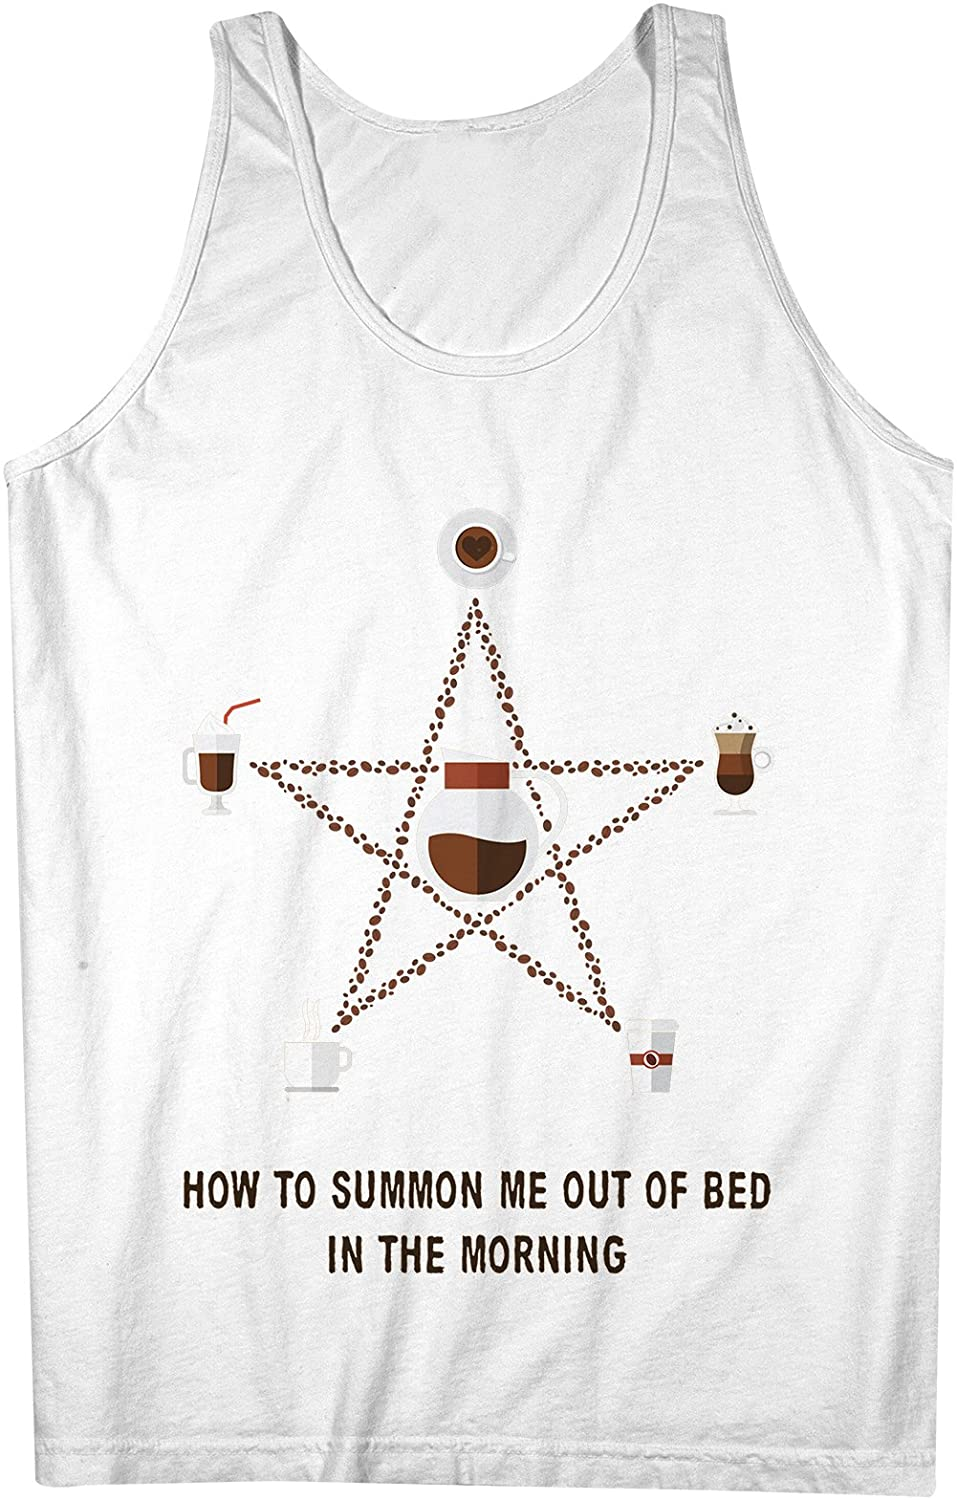 How To Summon Me Out Of Bed In The Morning おかしいです Coffee 男性用 Tank Top Sleeveless Shirt